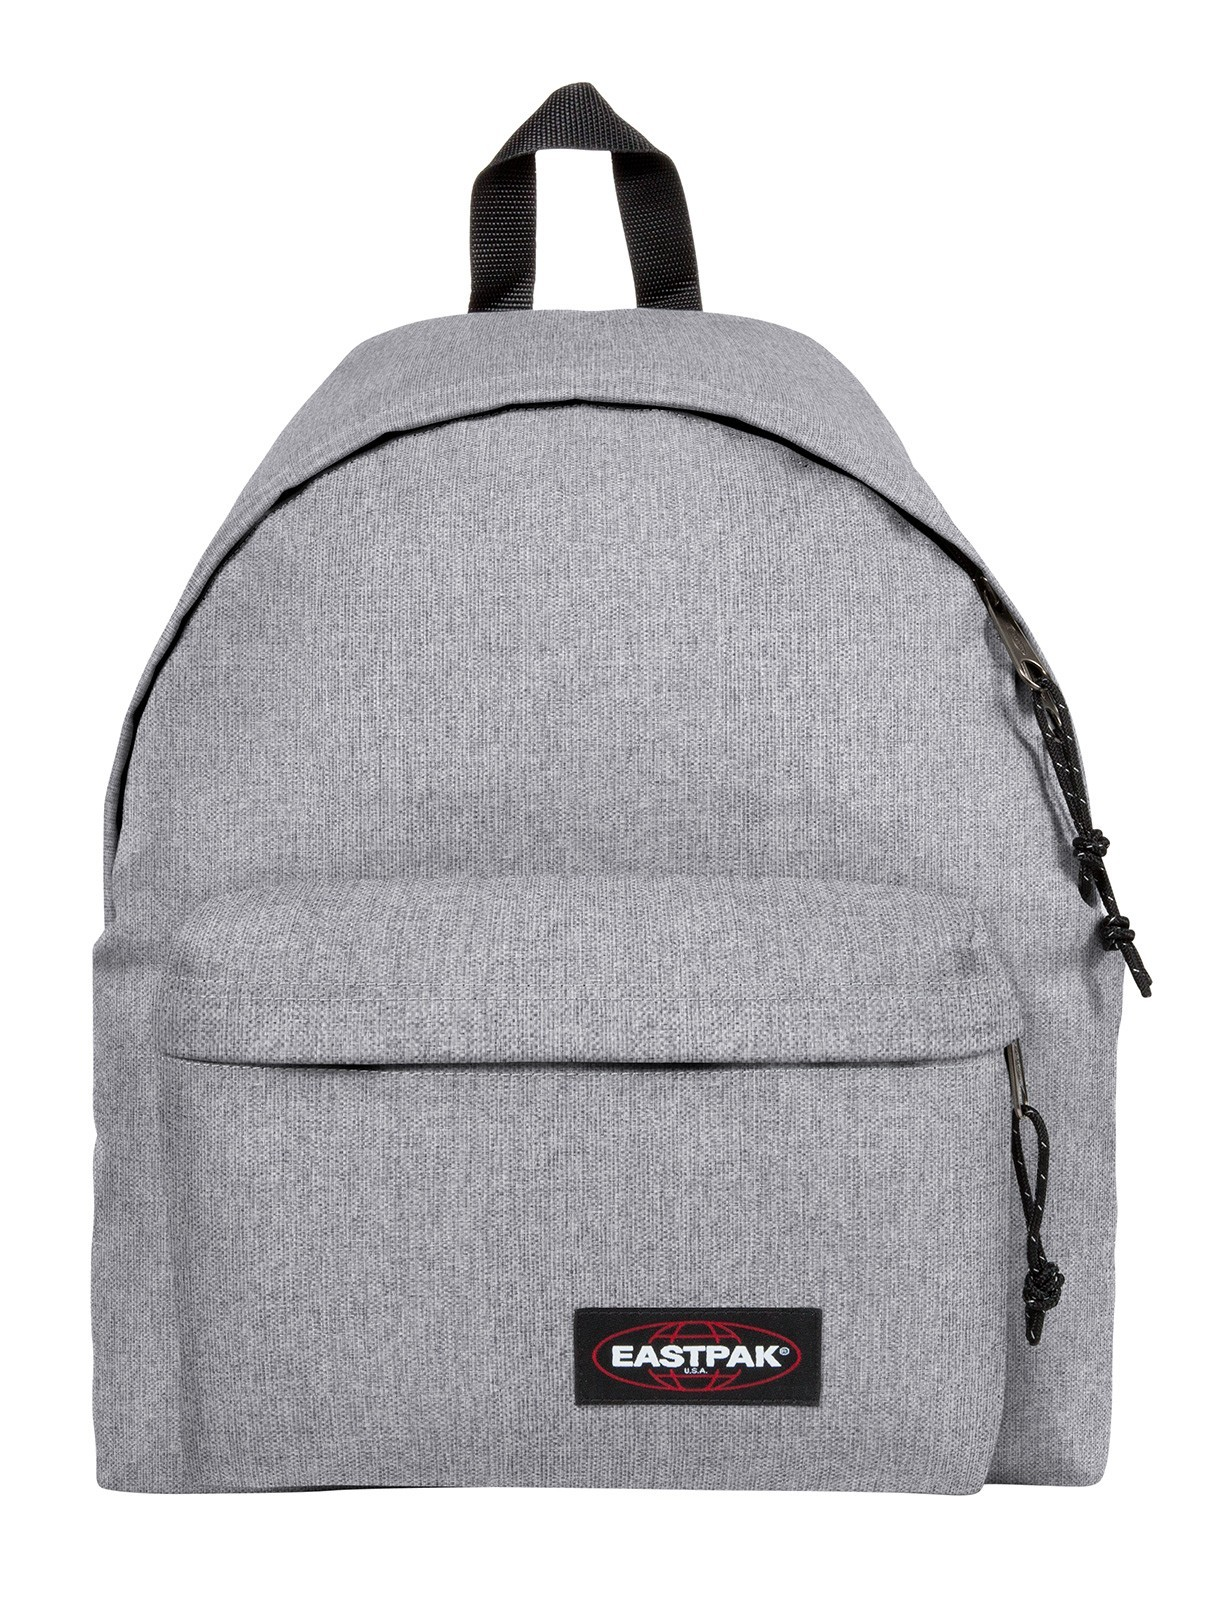 Eastpak Padded Pak'r 24l Women's Backpack In White in White